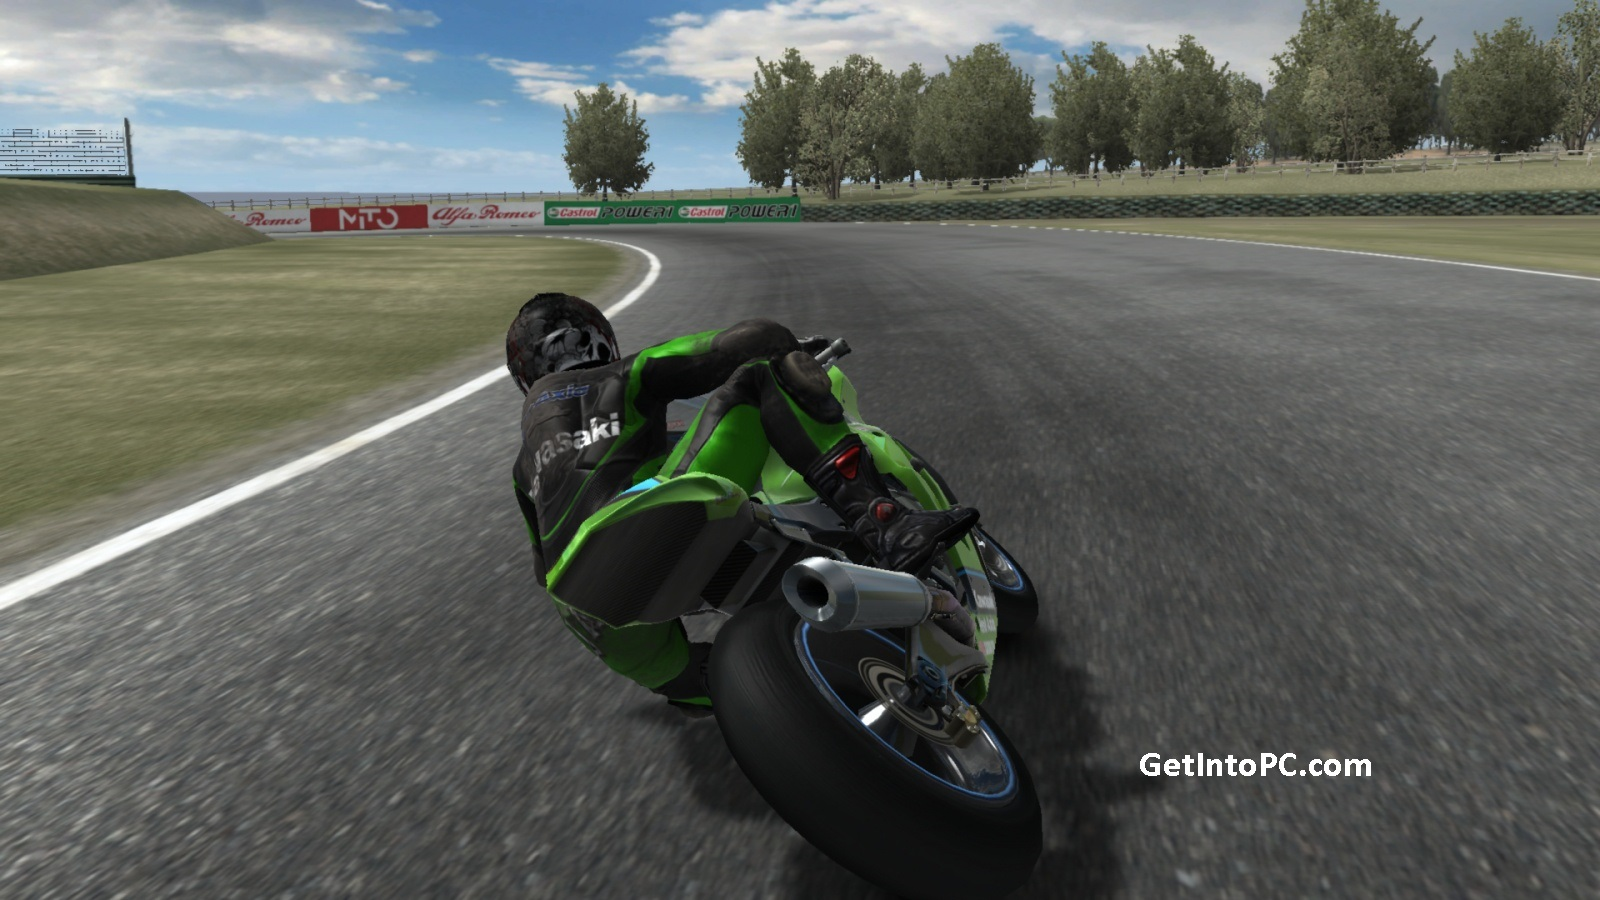 Bike Games Free Download This Bike racing game has